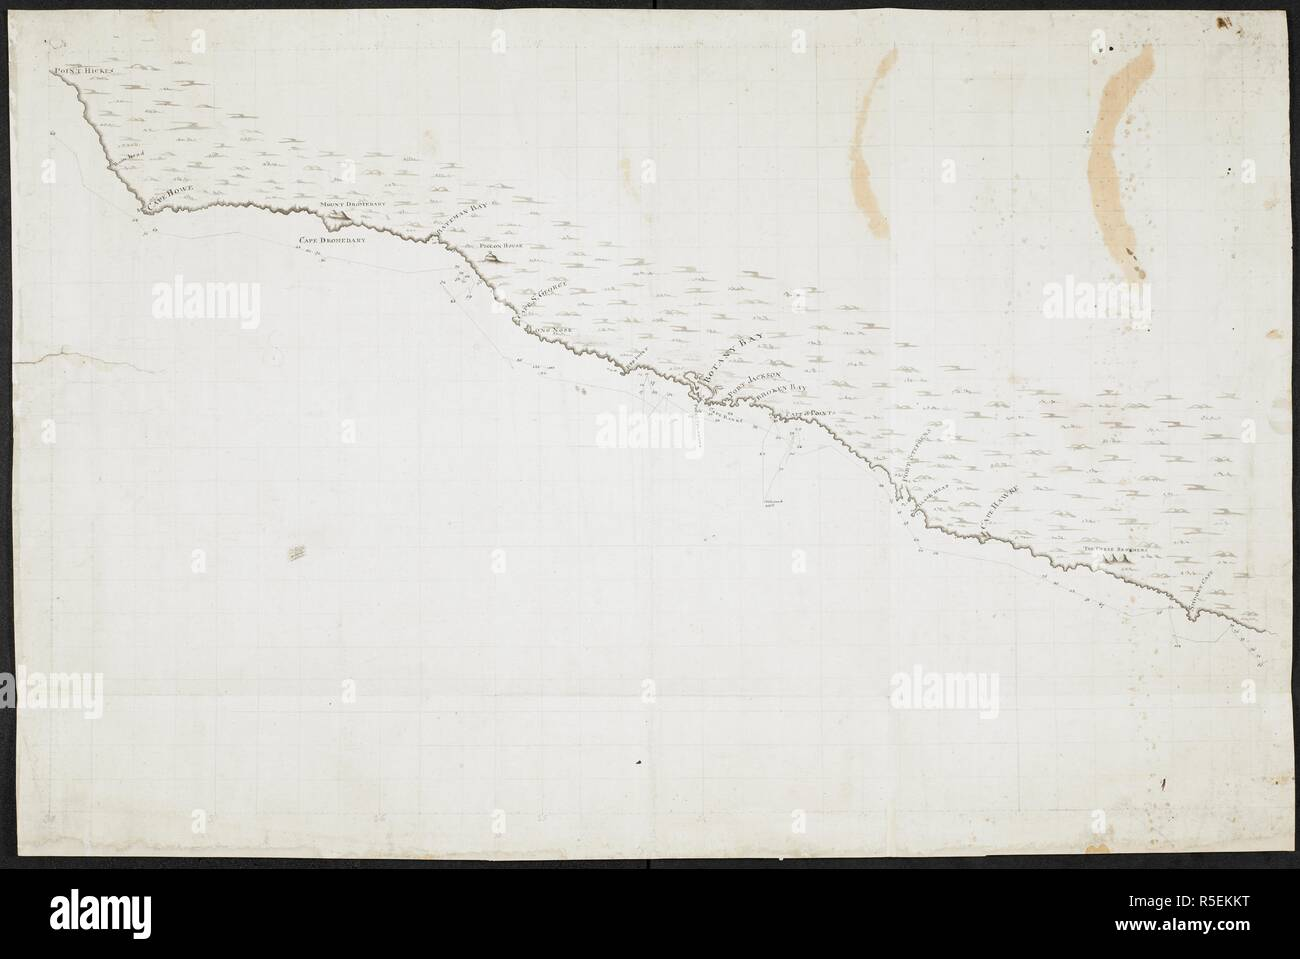 Map Of Australia 1770.Chart Of The Coast Of New South Wales Australia From Point Hicks